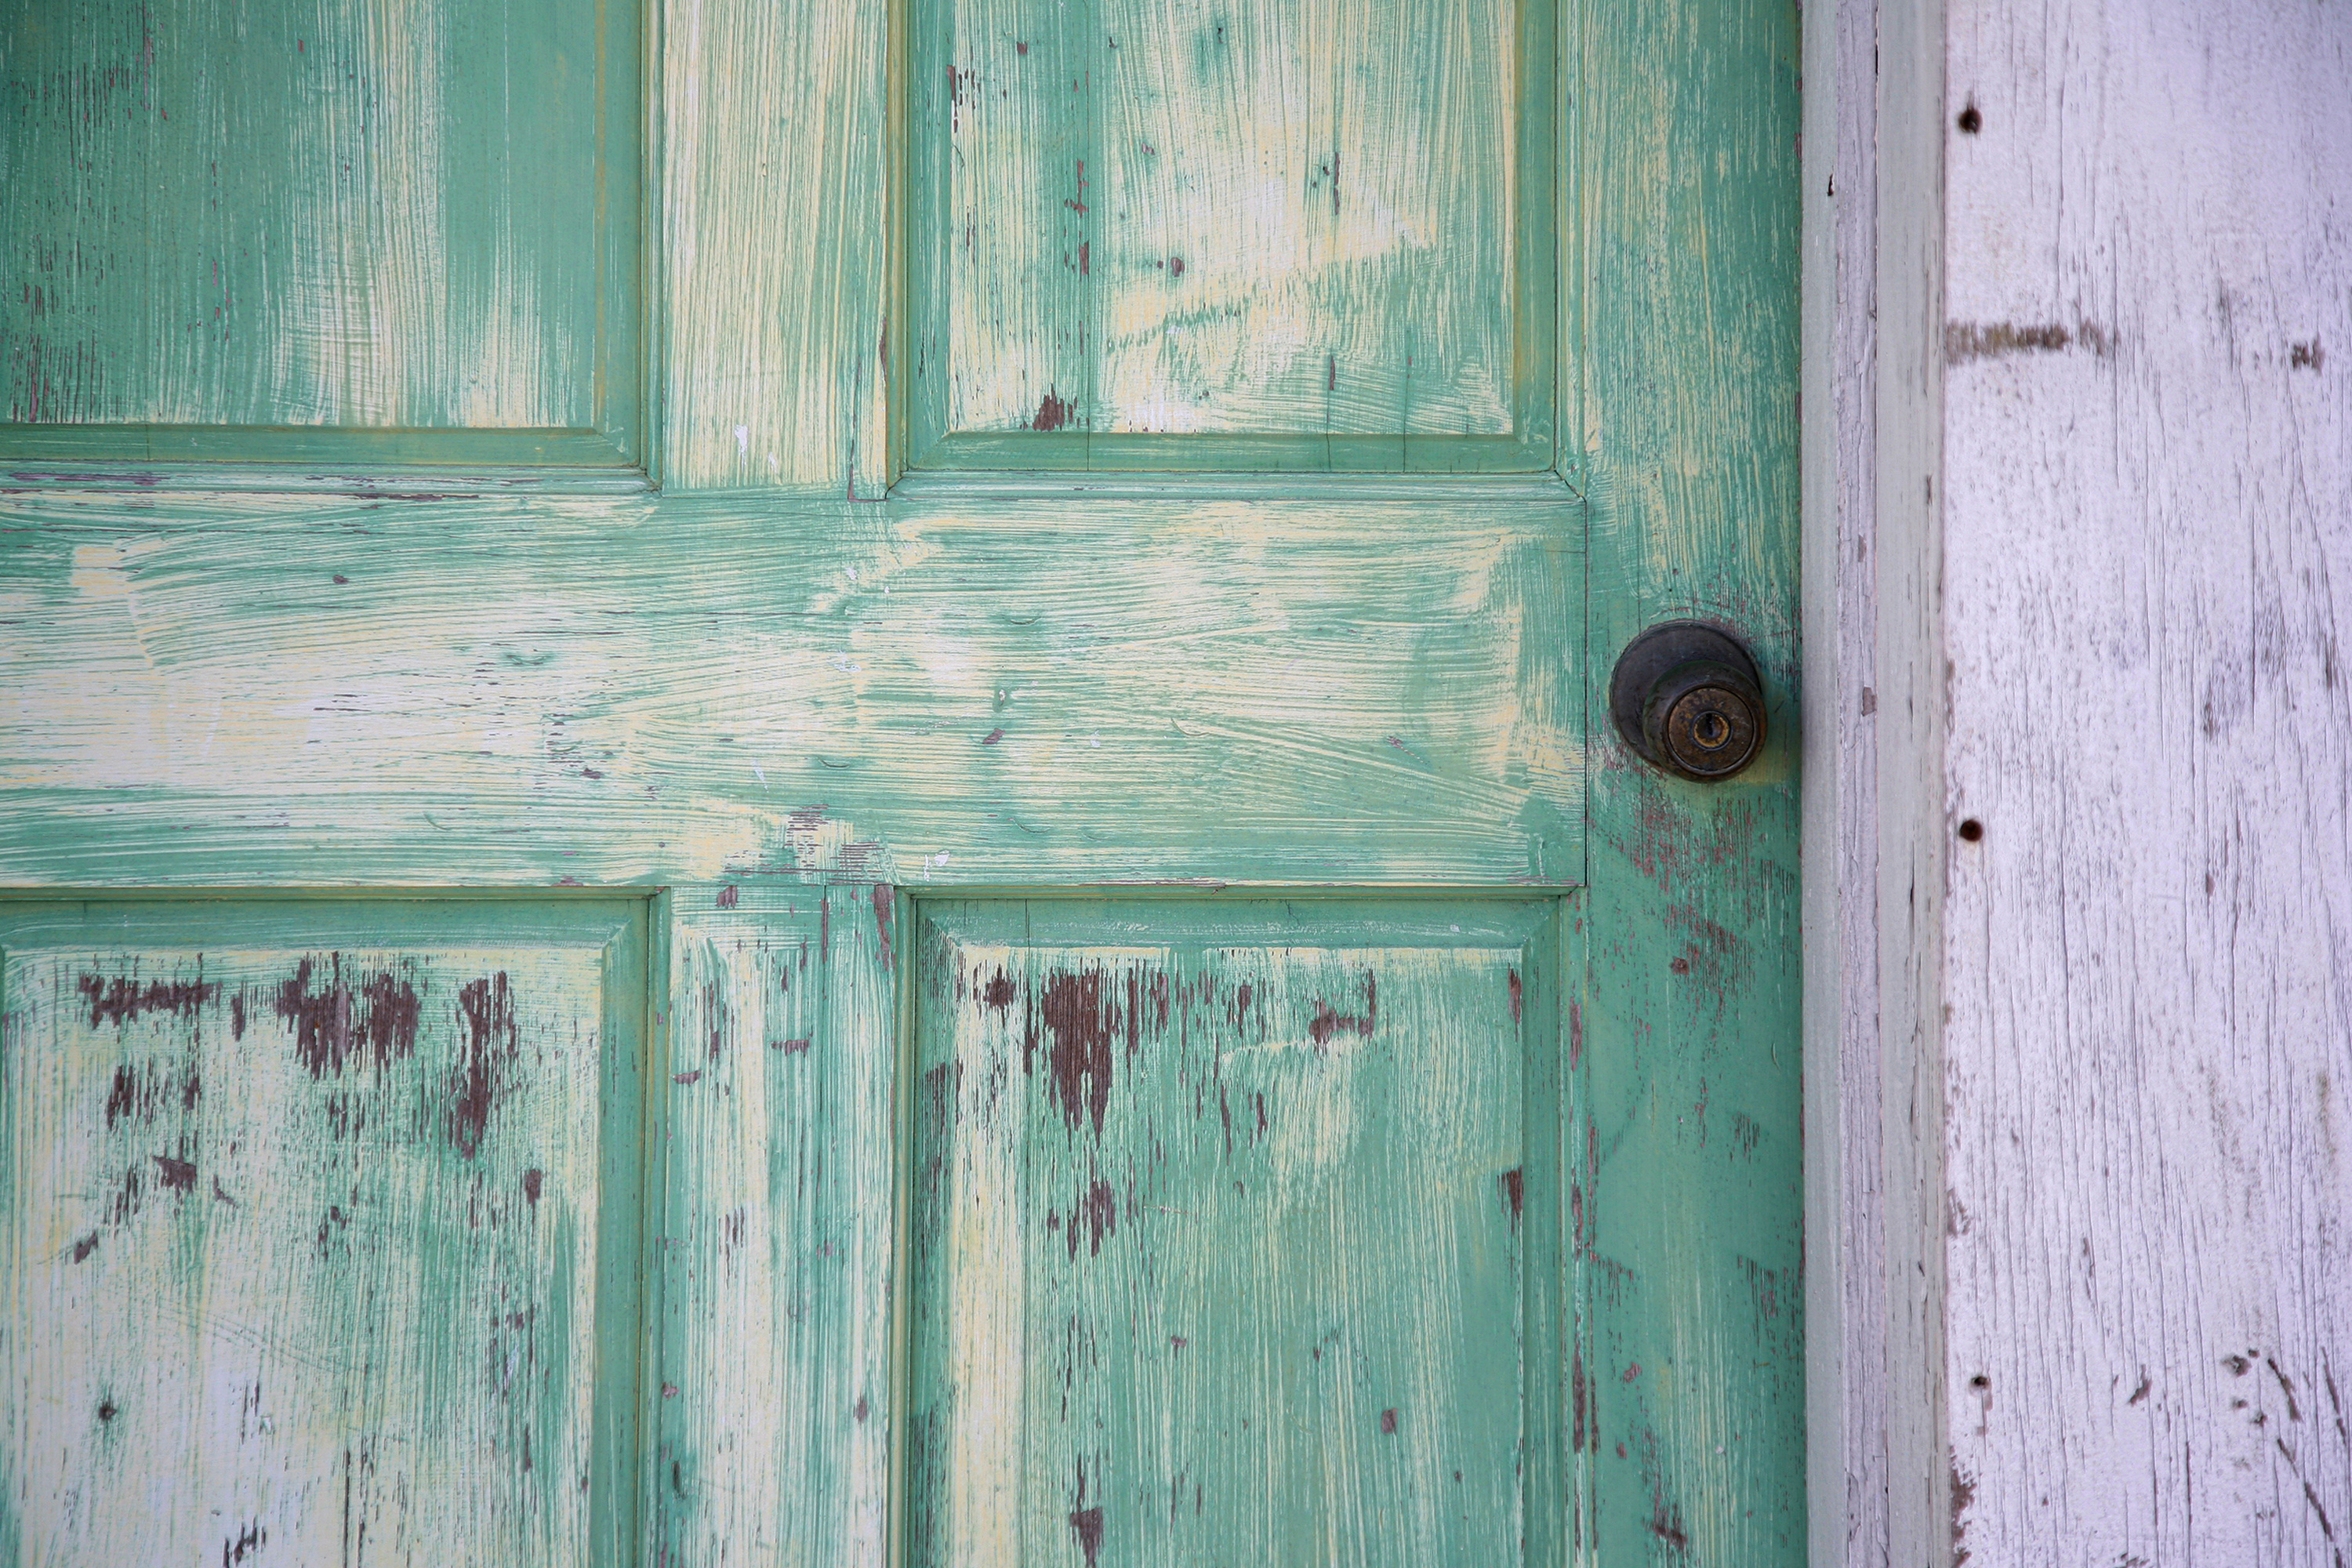 I'LL OPEN THE DOOR TO THE HOME OF YOUR DREAMS…